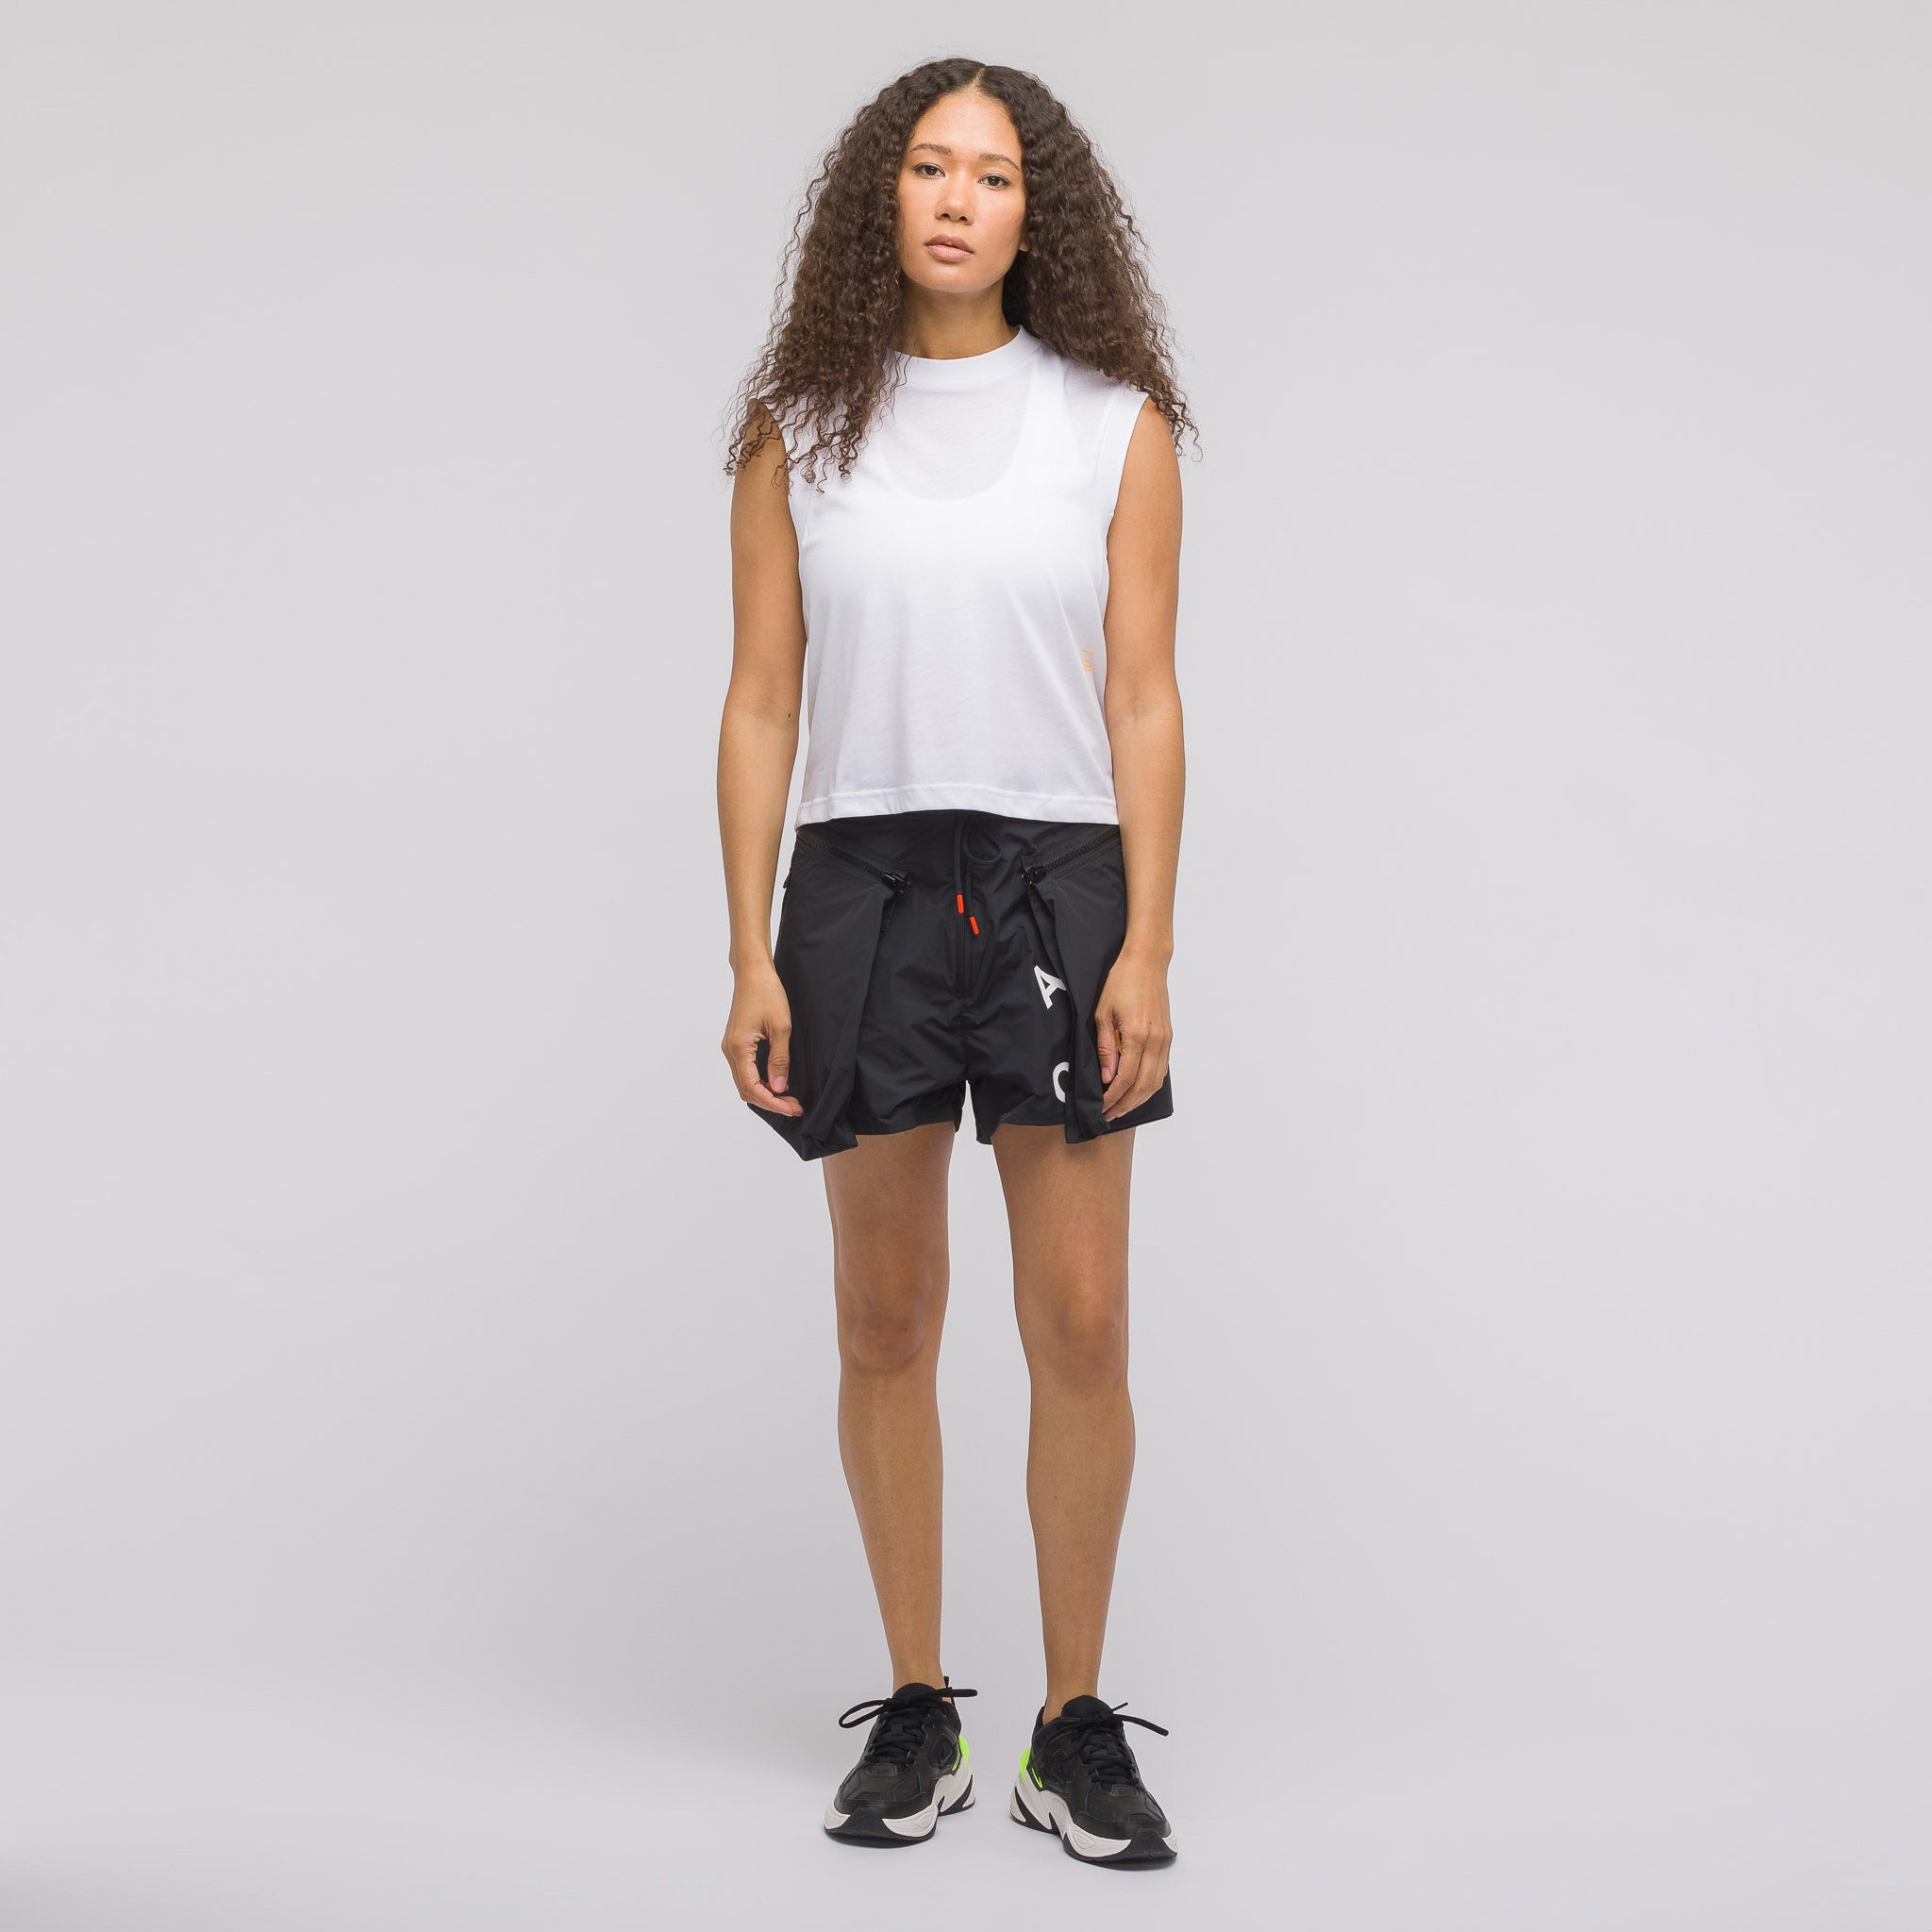 Women's ACG Sleeveless Top in White